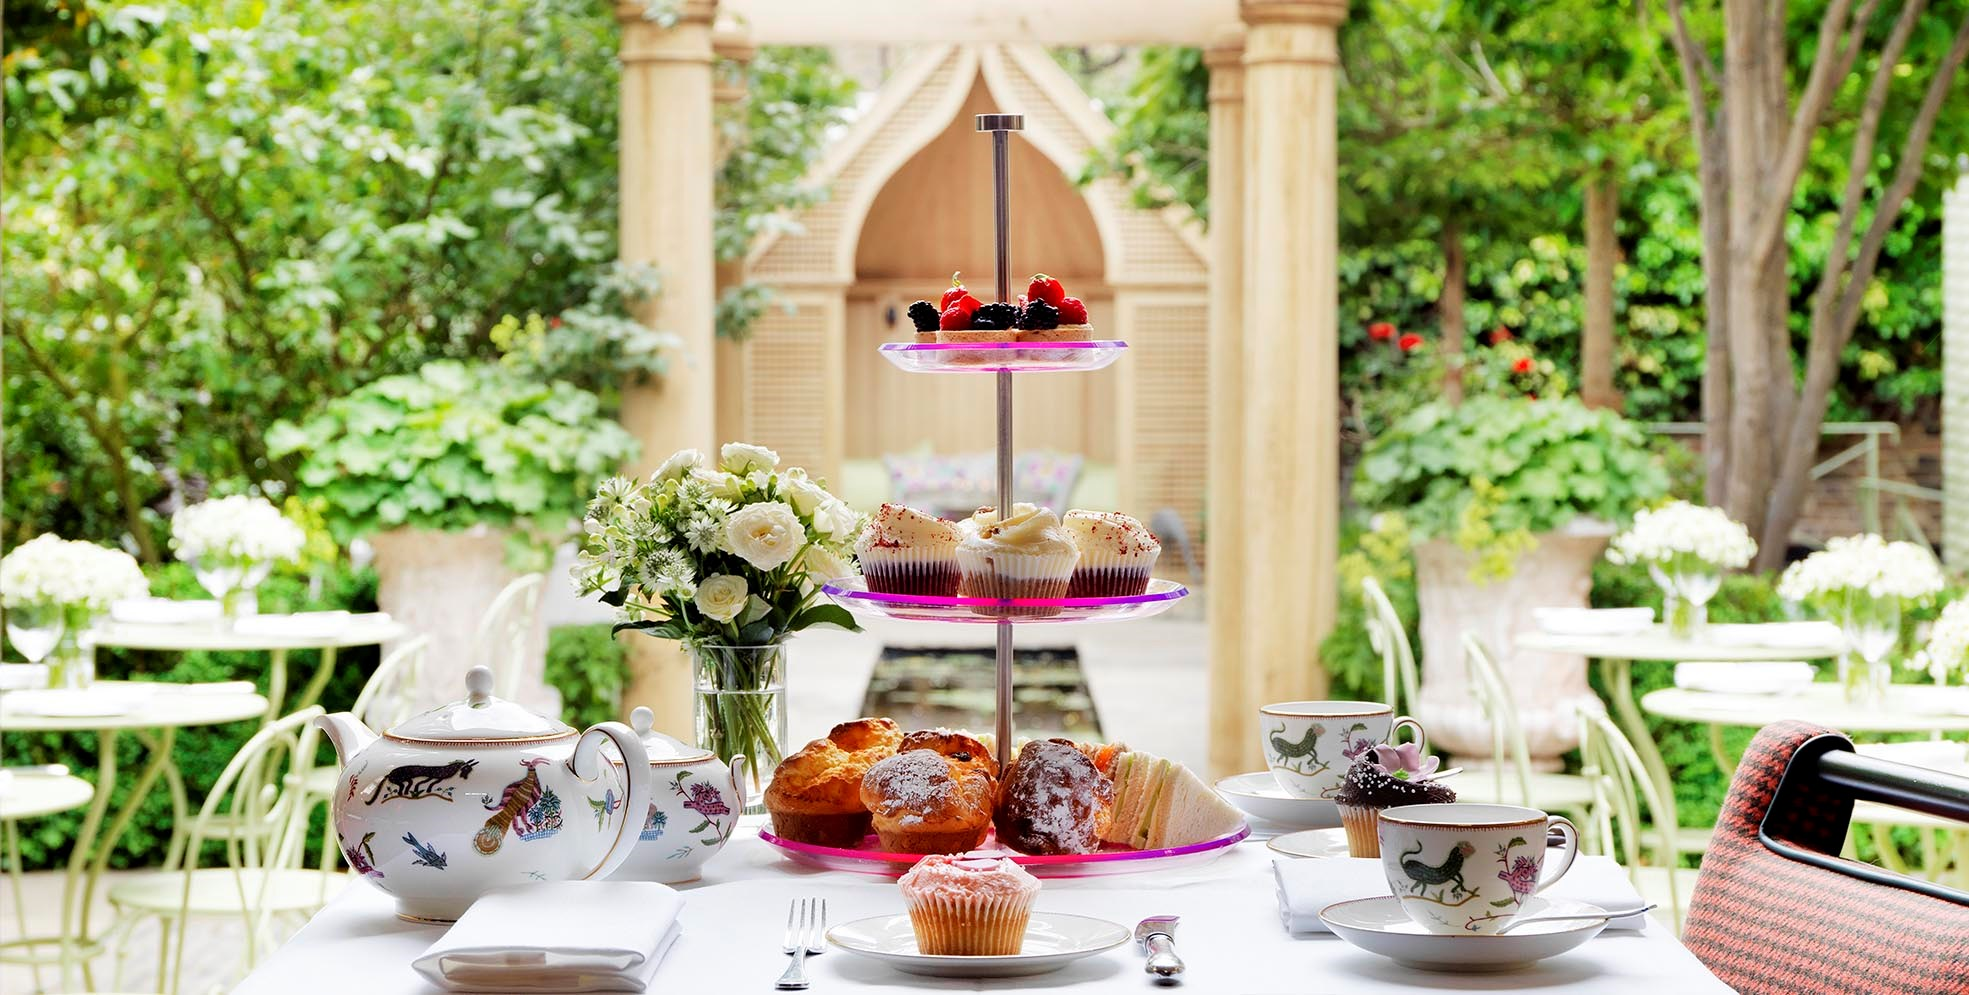 Best afternoon teas in London - Number 16